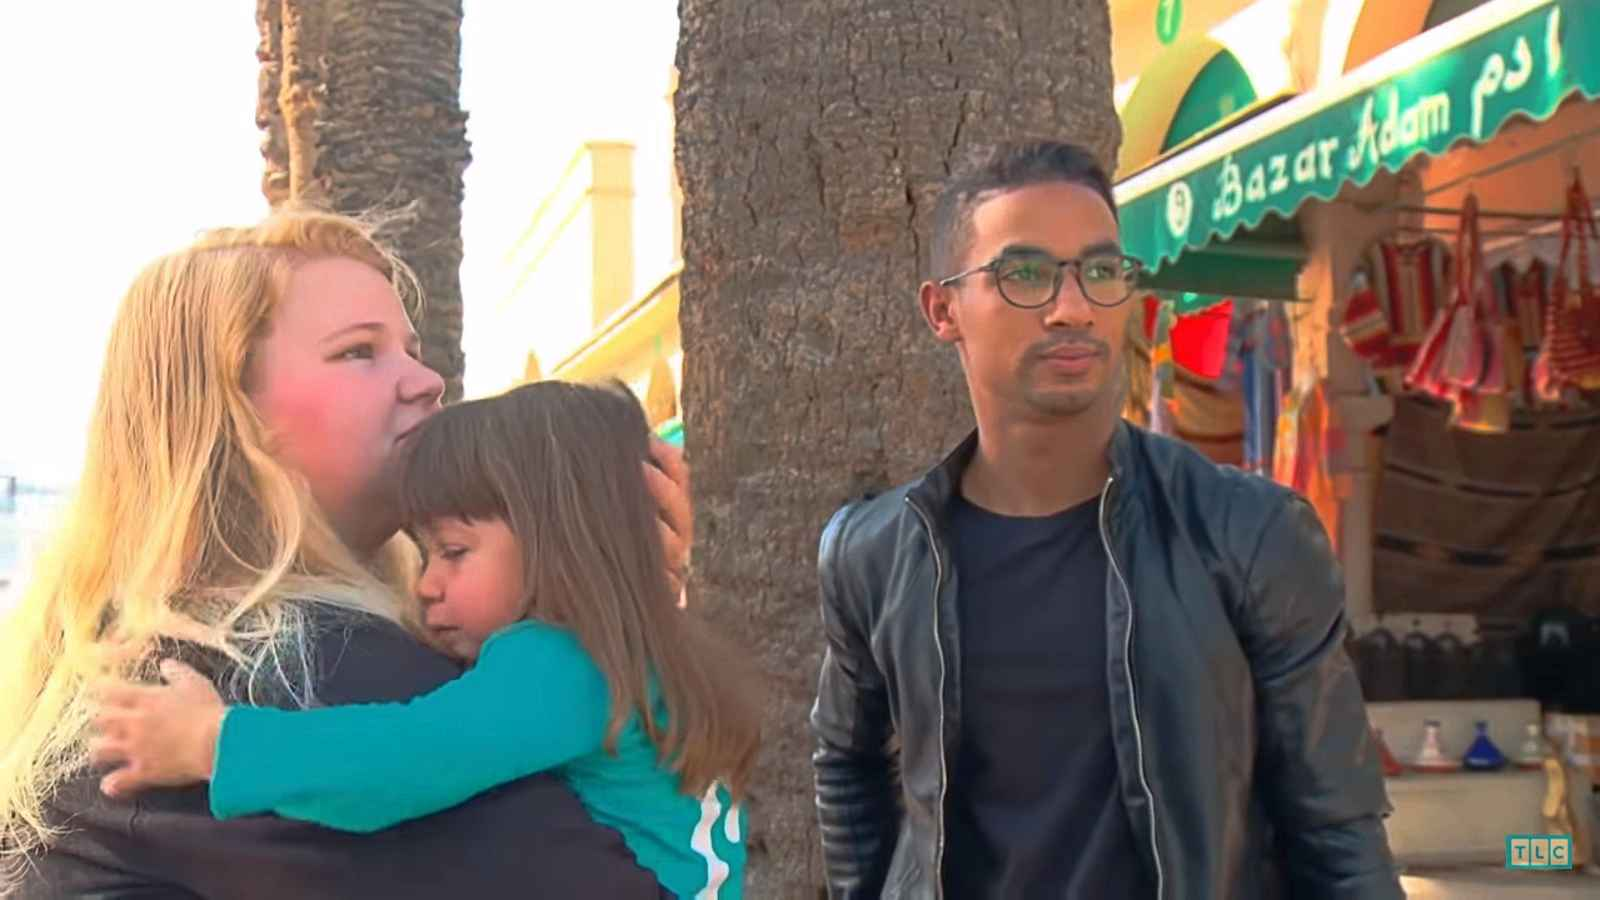 90 day fiance Nicole Nafziger and Azan Tefou in Morocco